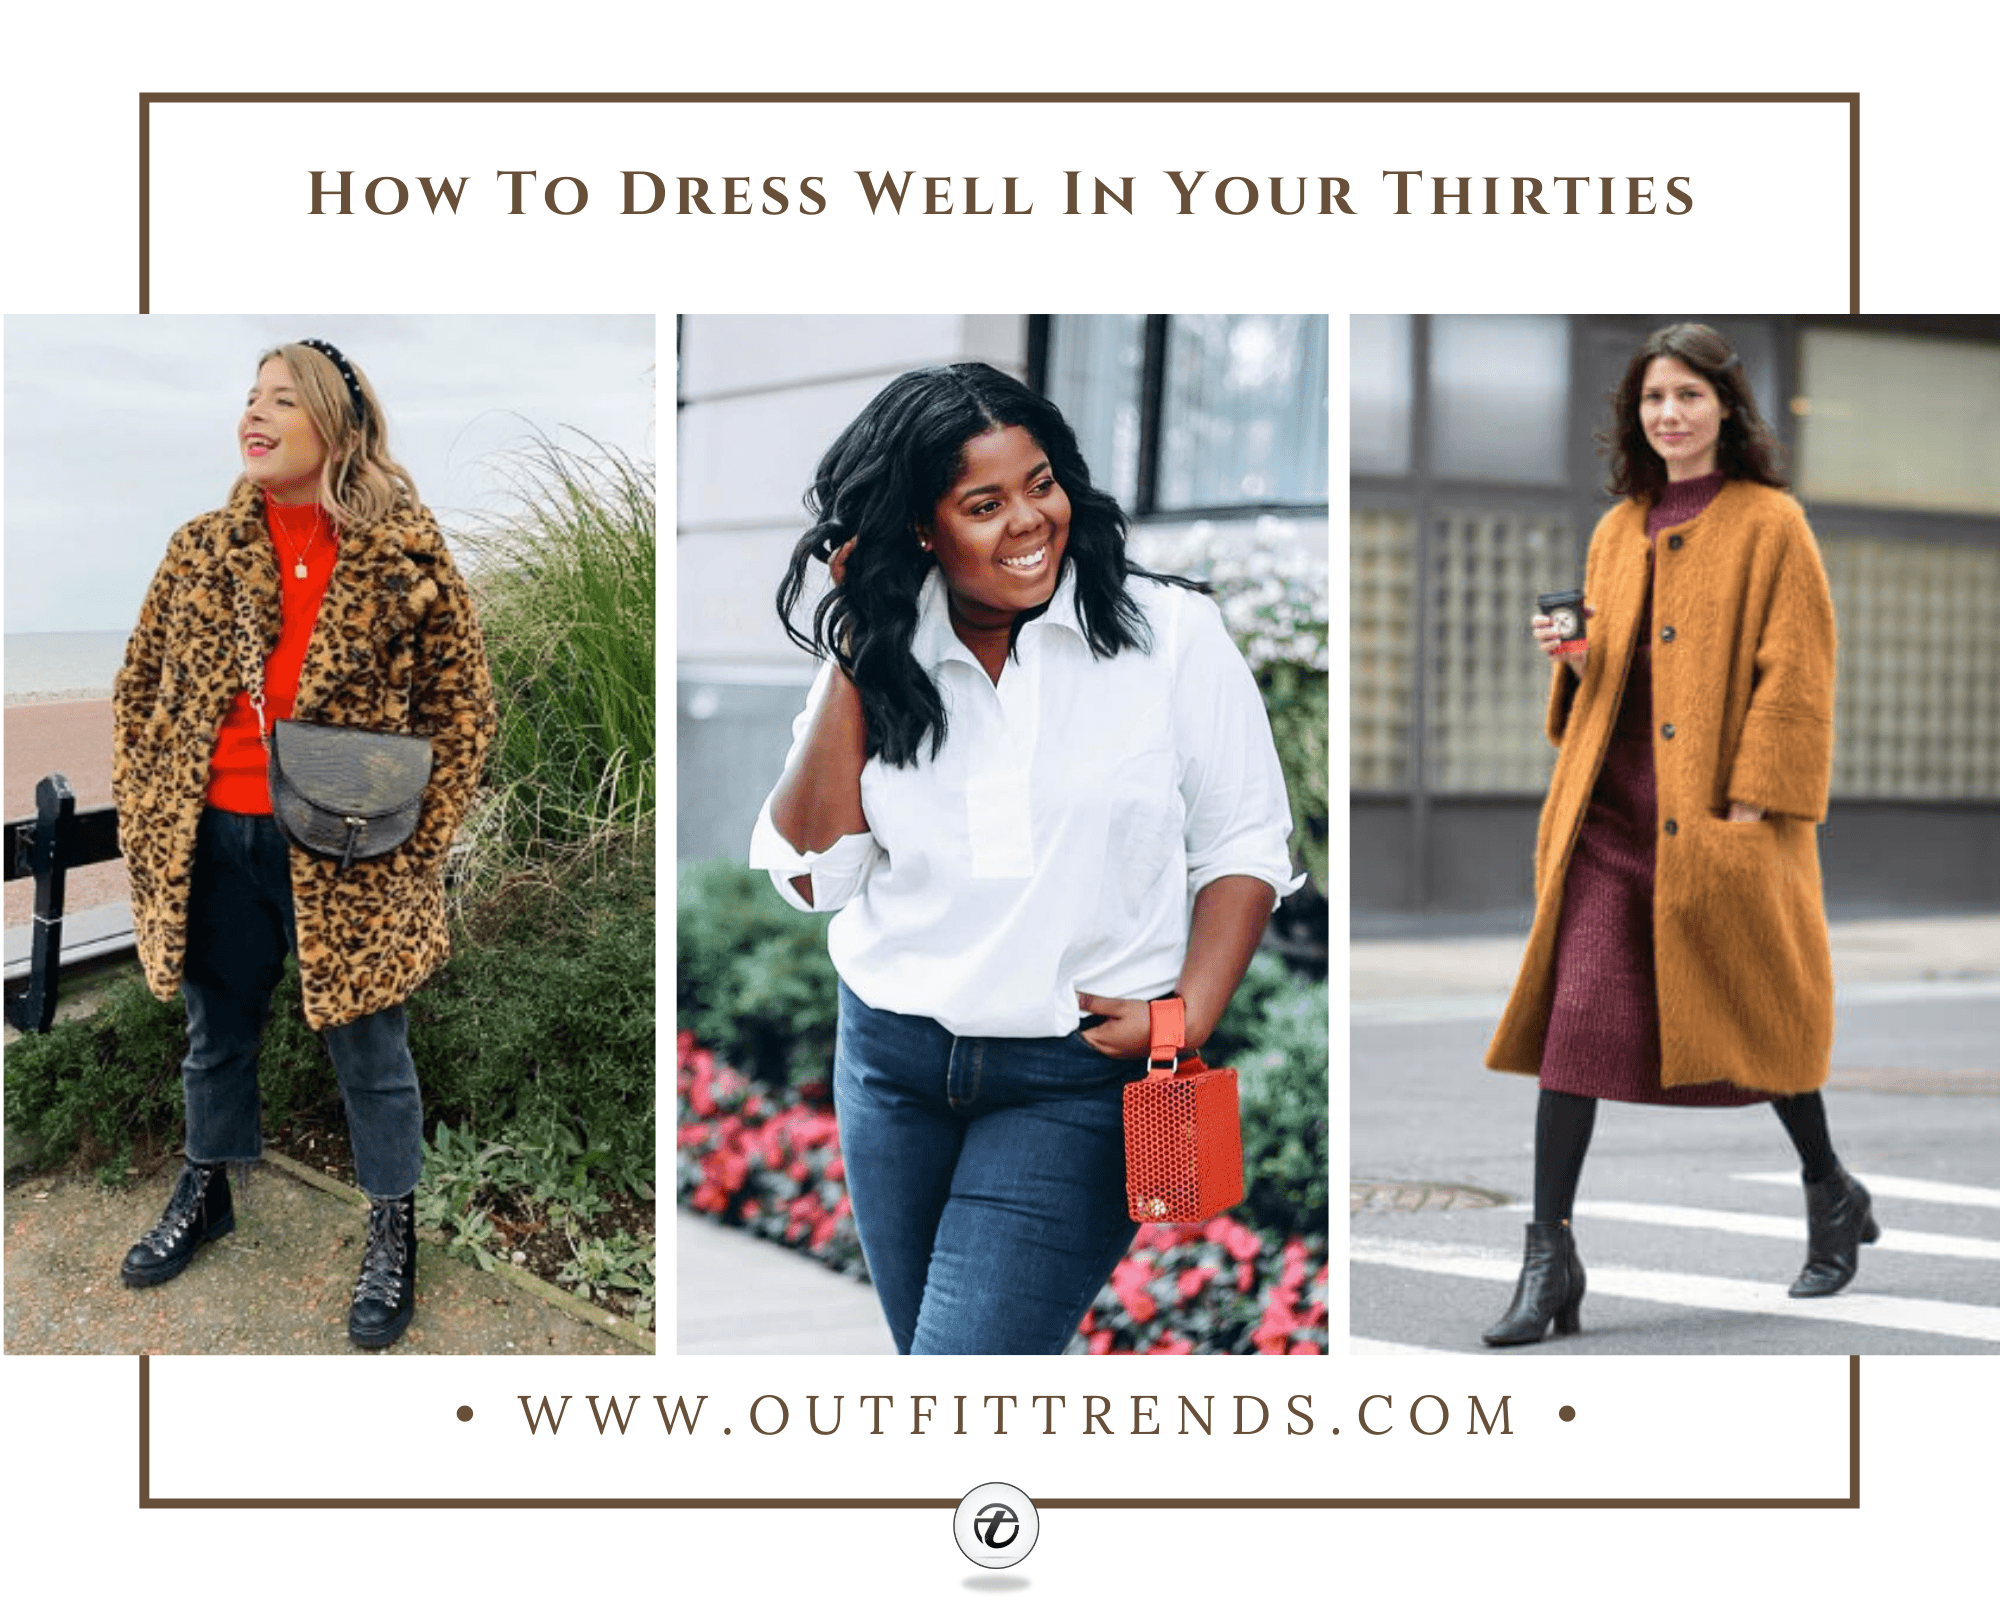 How To Dress In Your Thirties – 25 Outfits For Women Over 30